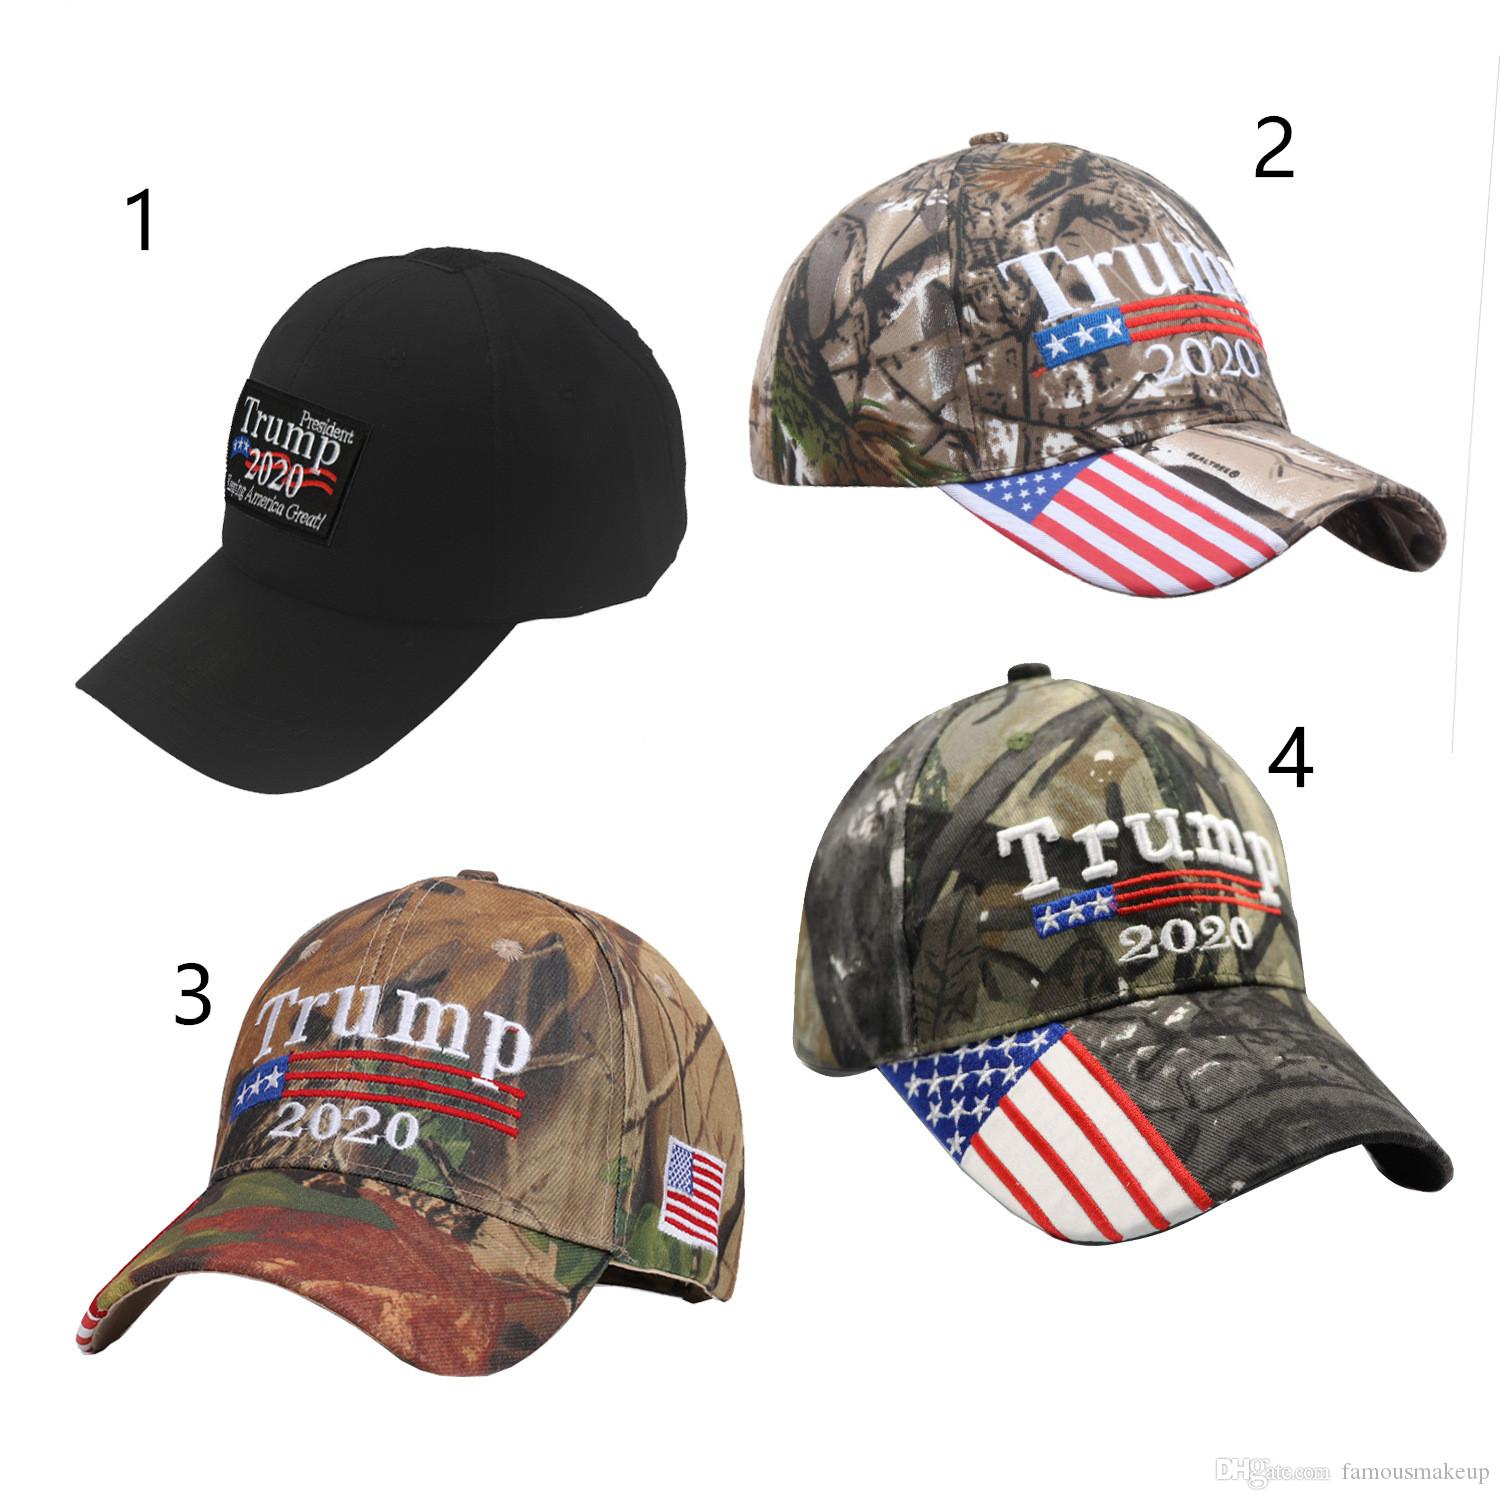 Donald Trump 2020 Camouflage Cap Hat Embroidered USA Flag Keep America Great Siy